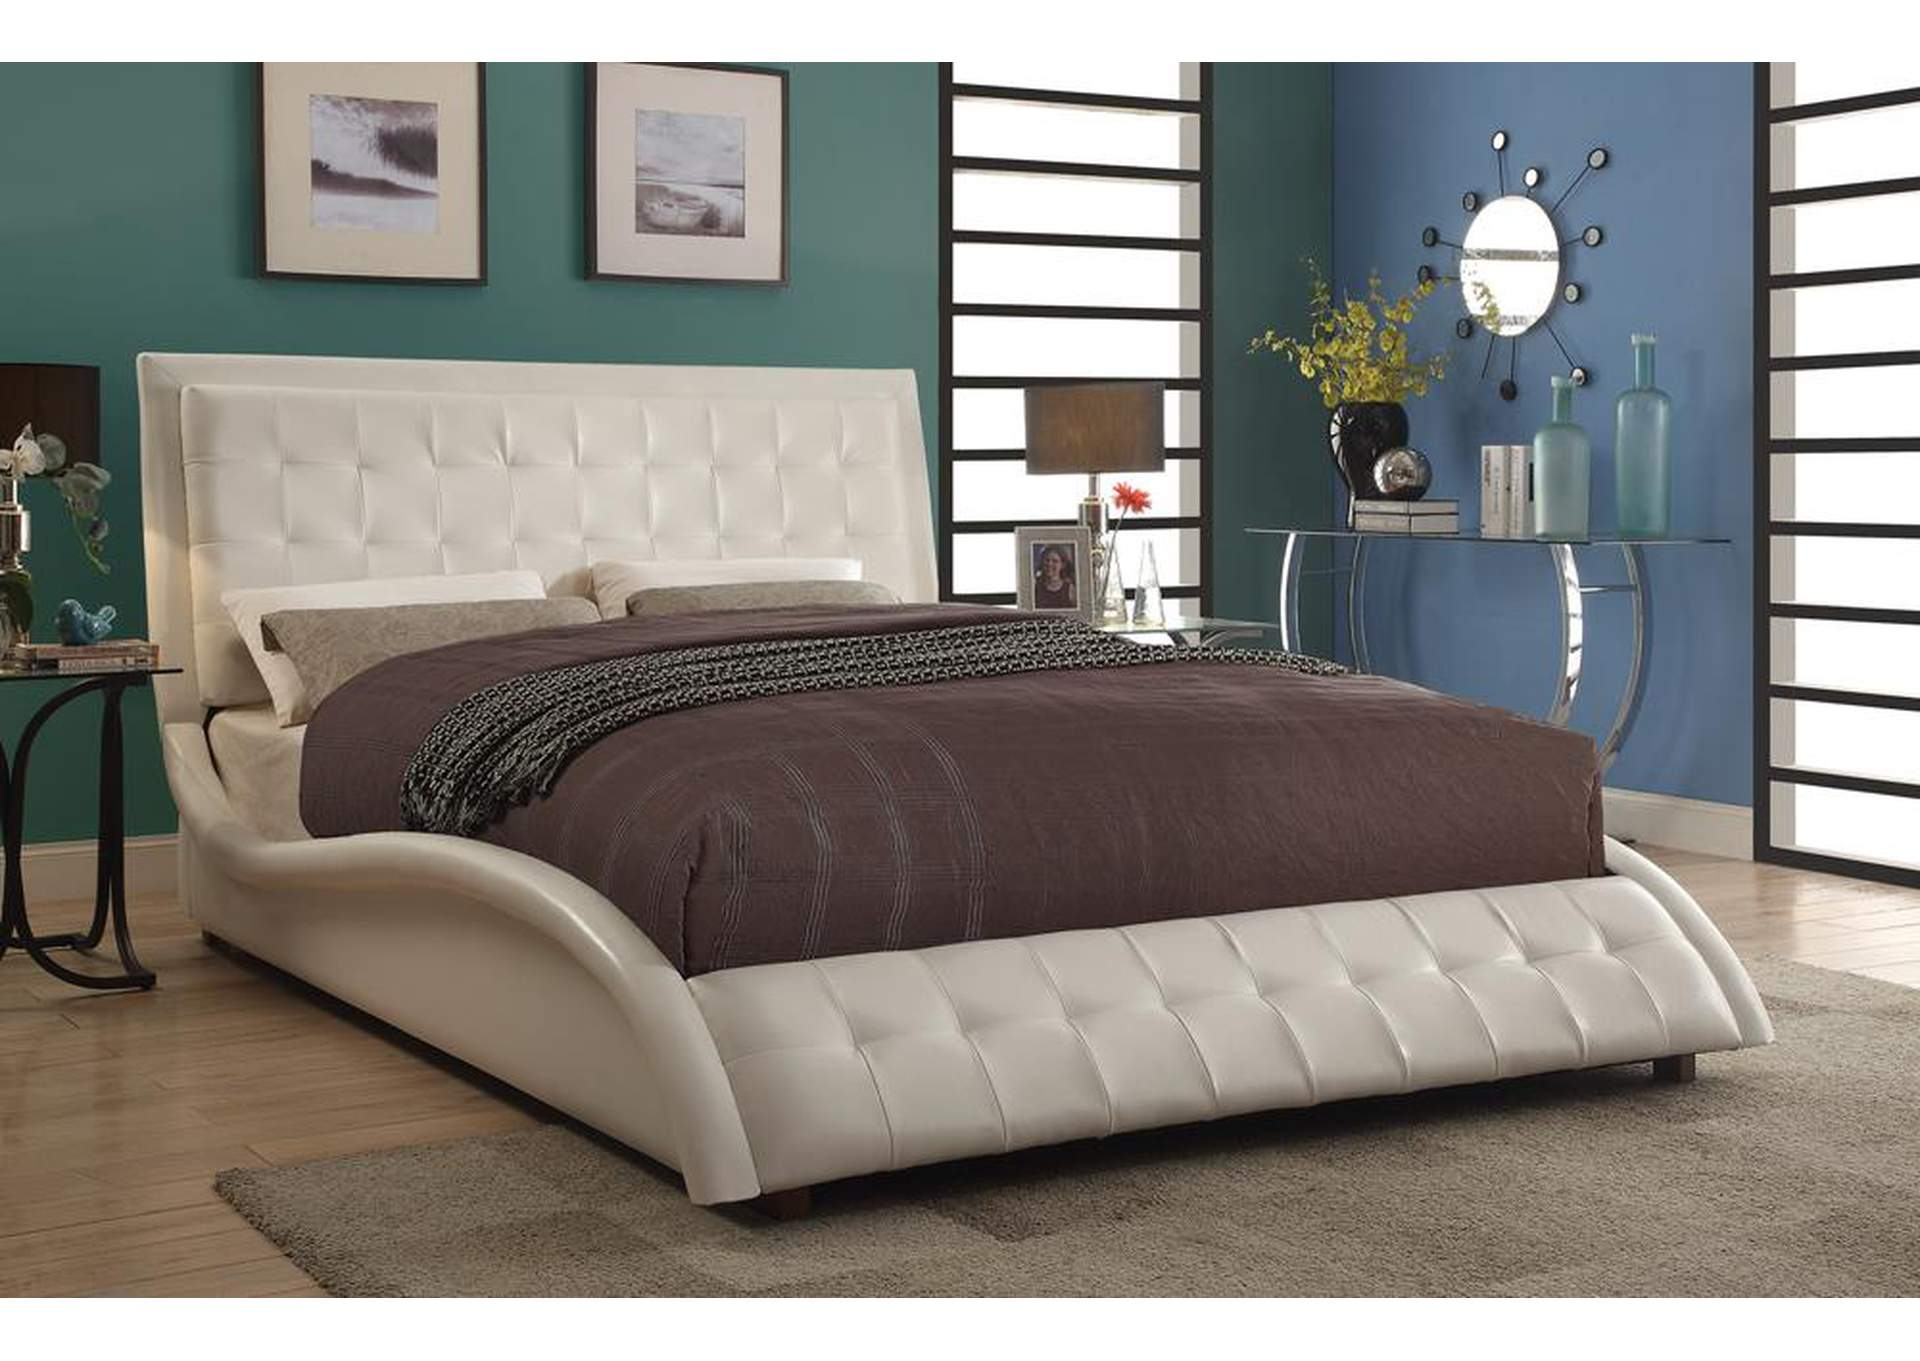 Tully White Upholstered Queen Bed,Coaster Furniture